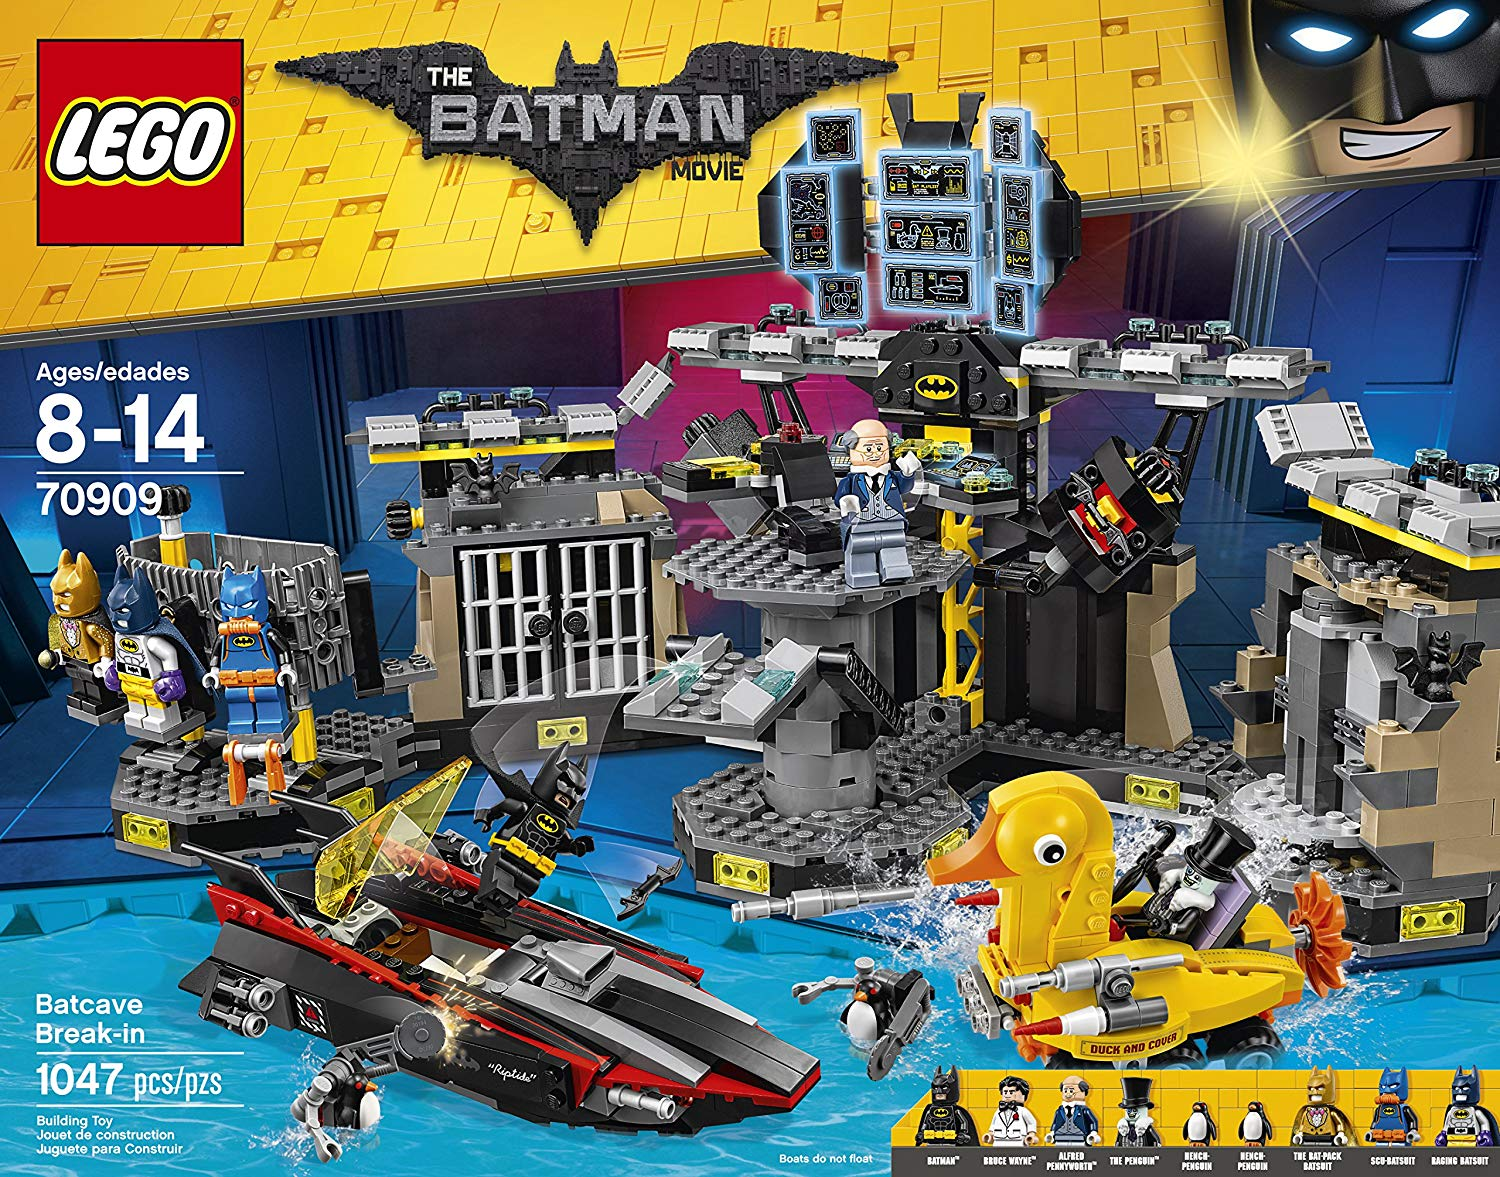 The LEGO Batman Movie sets on sale at Amazon [News] | The